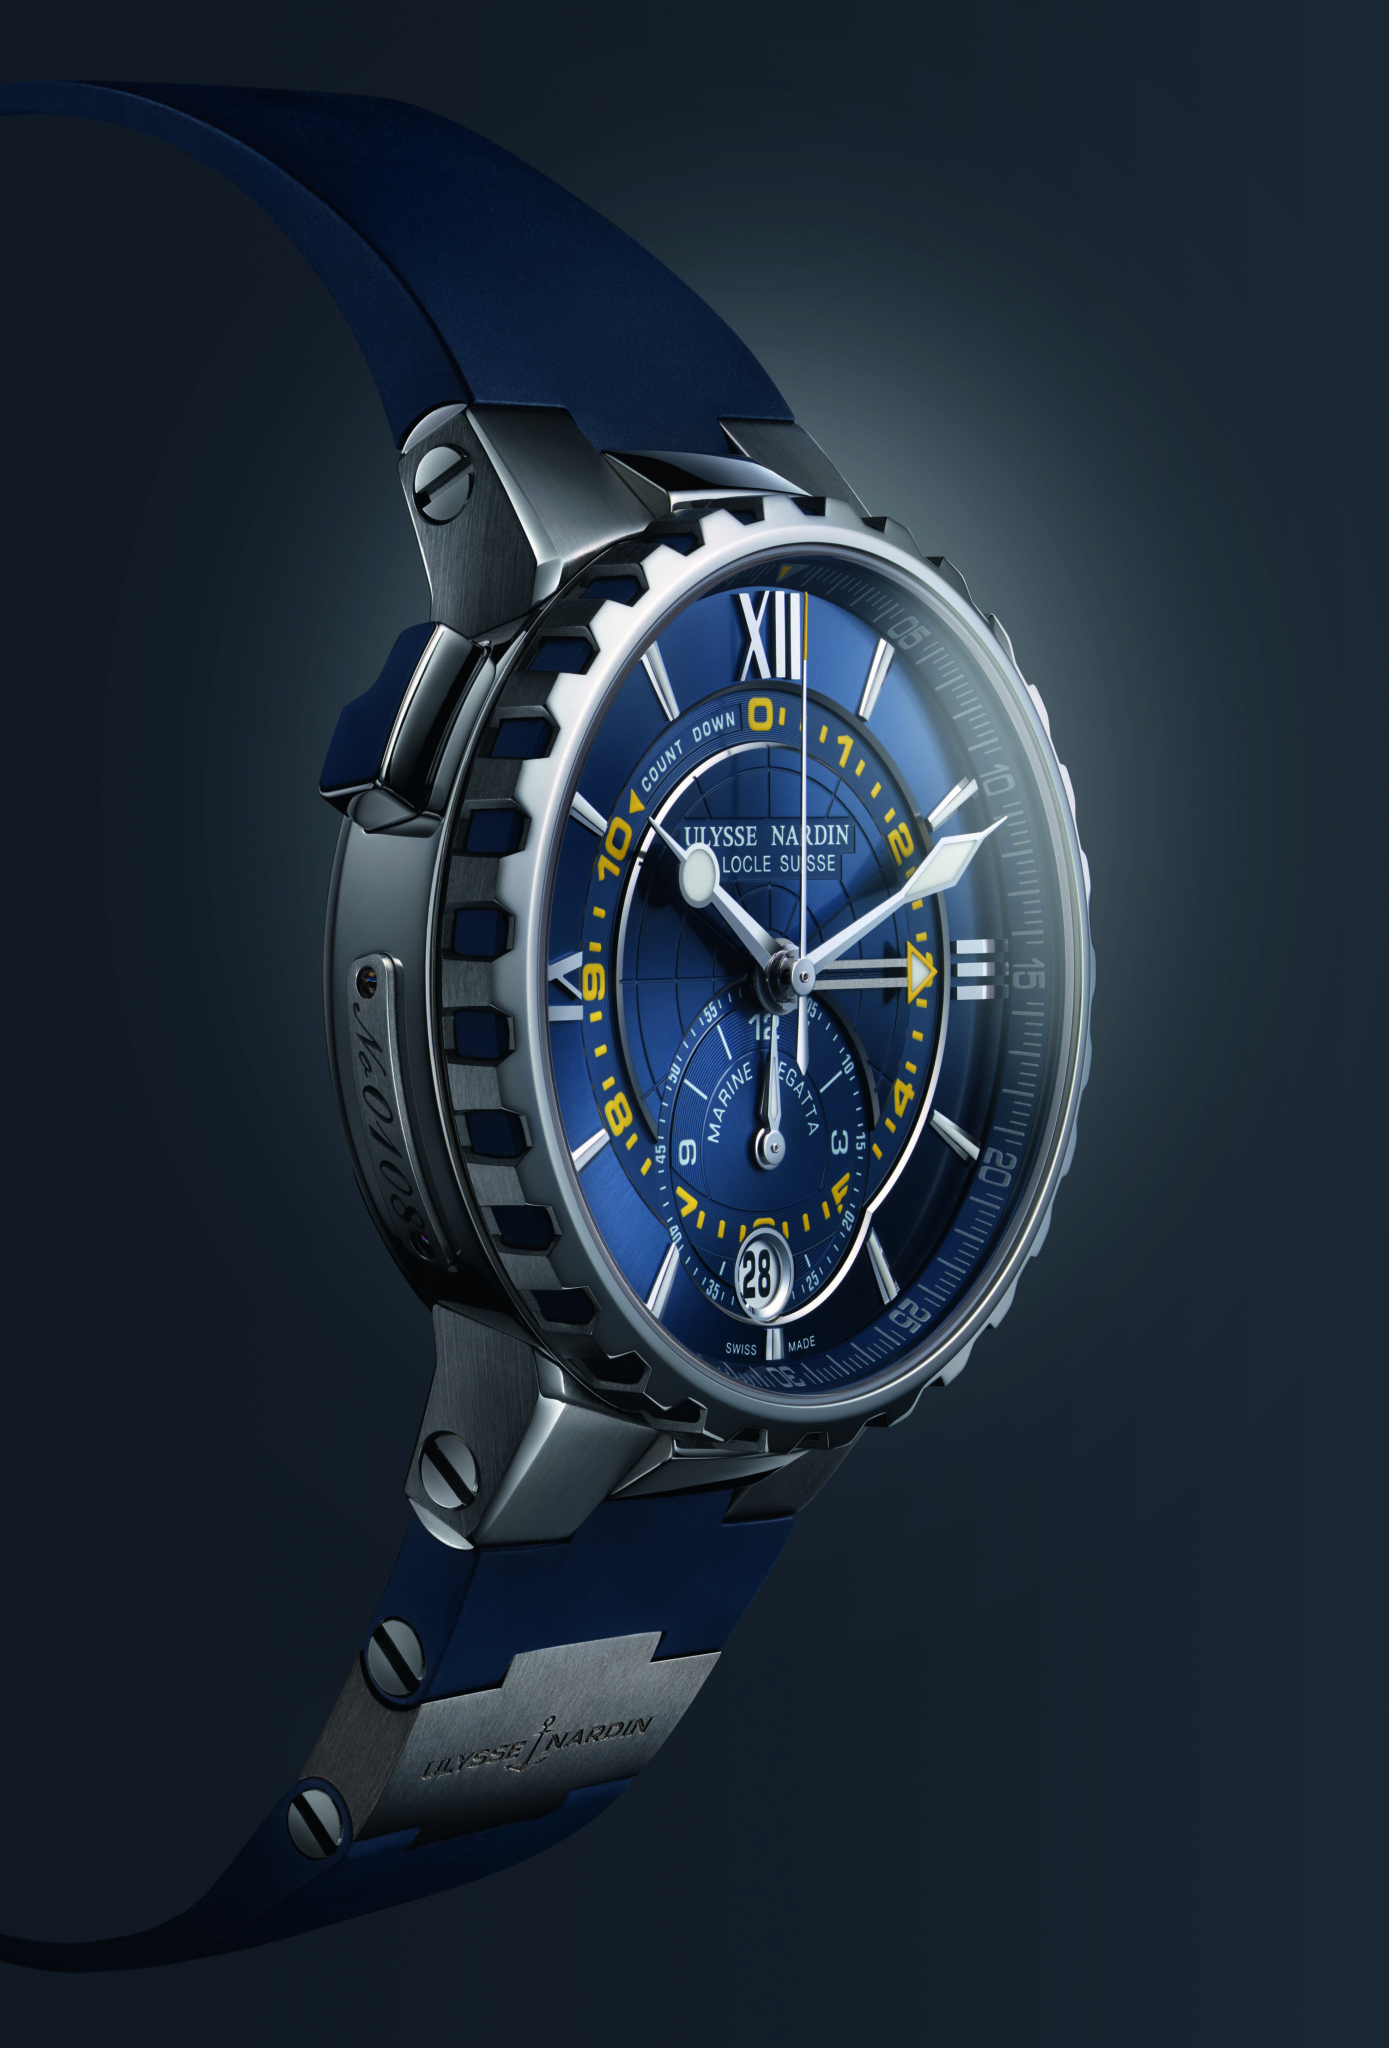 Ulysse Nardin won the Sports Watch Prize for its Marine Regatta.